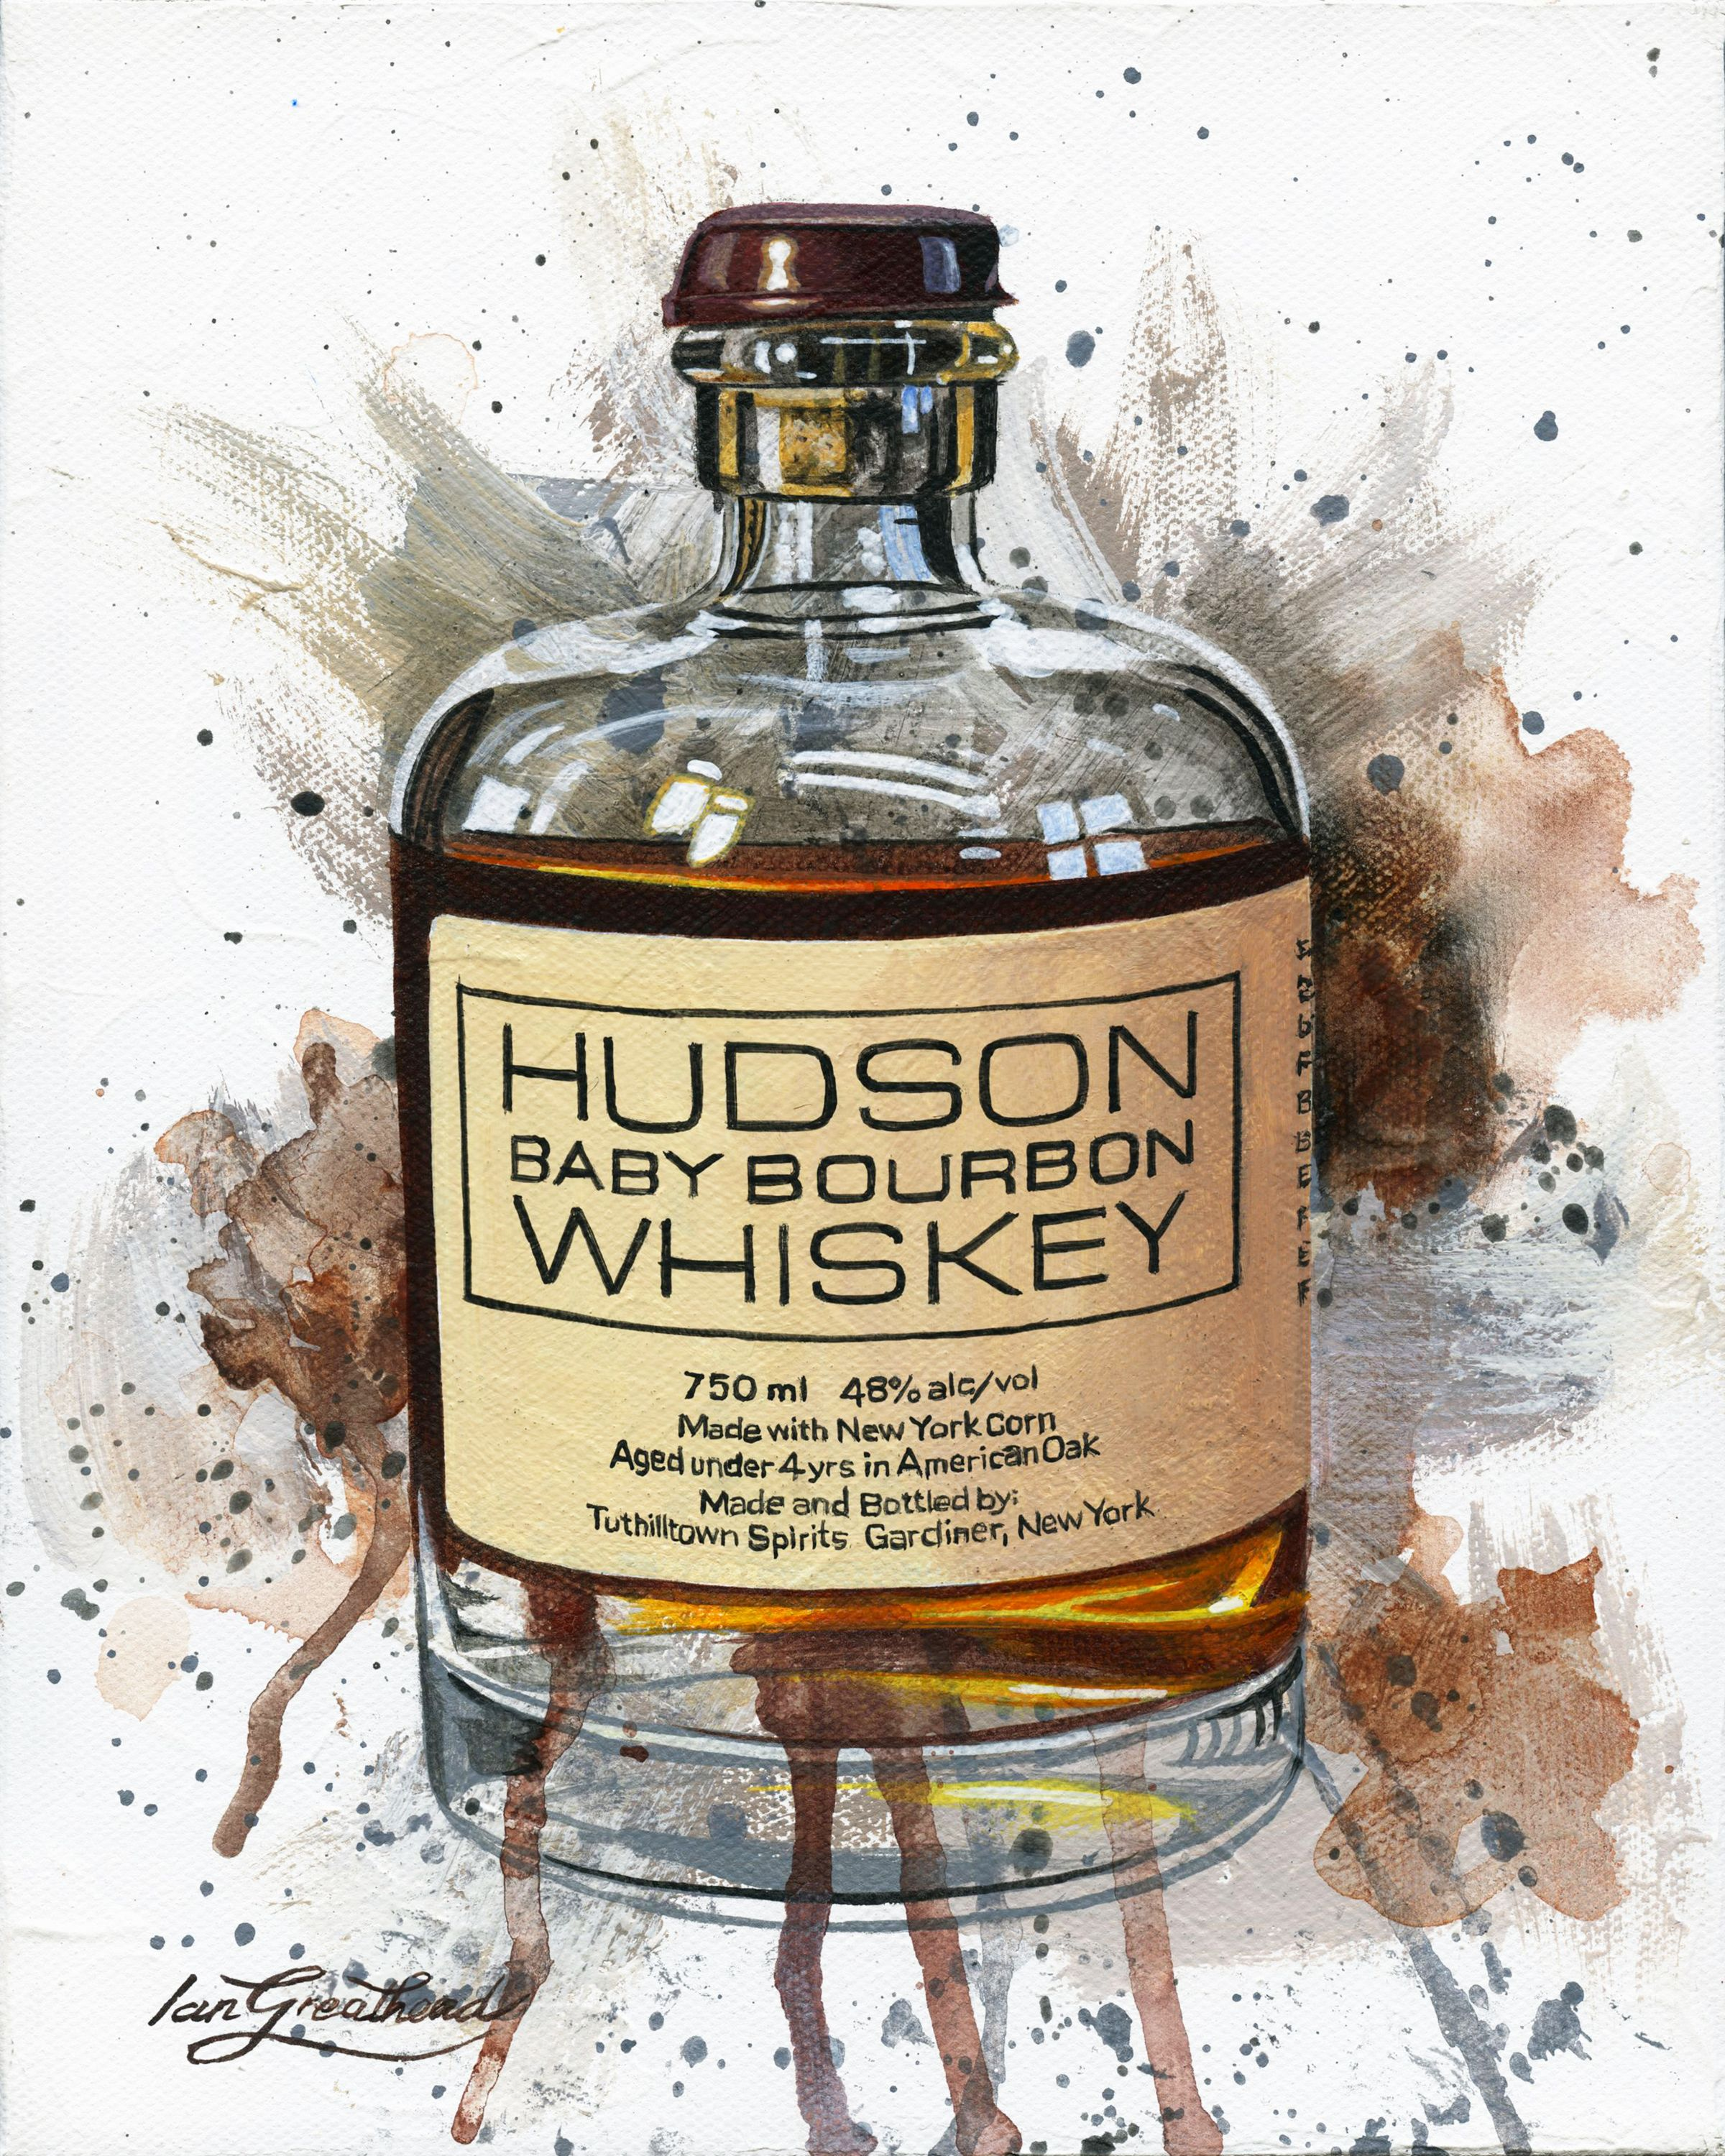 Hudson Baby Bourbon Whiskey By Ian Greathead 2020 Painting Acrylic On Canvas Singulart In 2020 Best Bourbons Sweet Bourbon Hudson Baby Bourbon